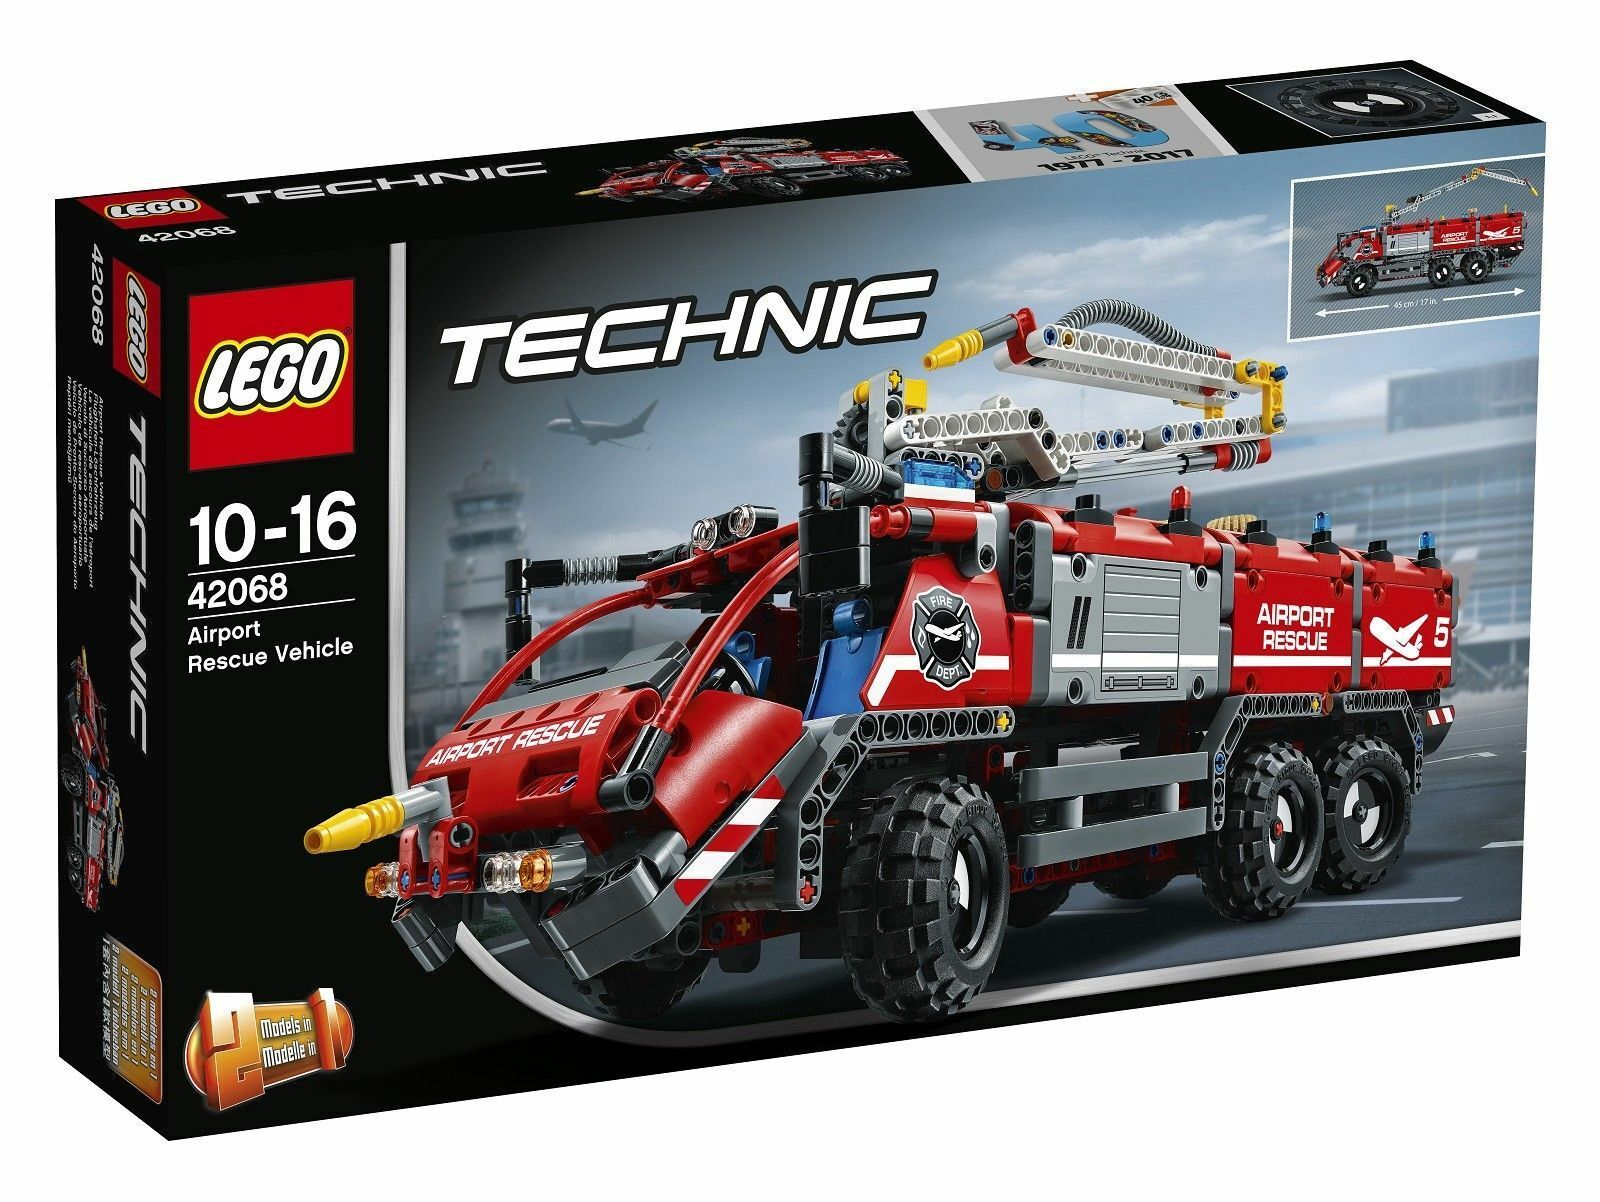 2 in 1 LEGO 42068 Technic Airport Rescue Vehicle